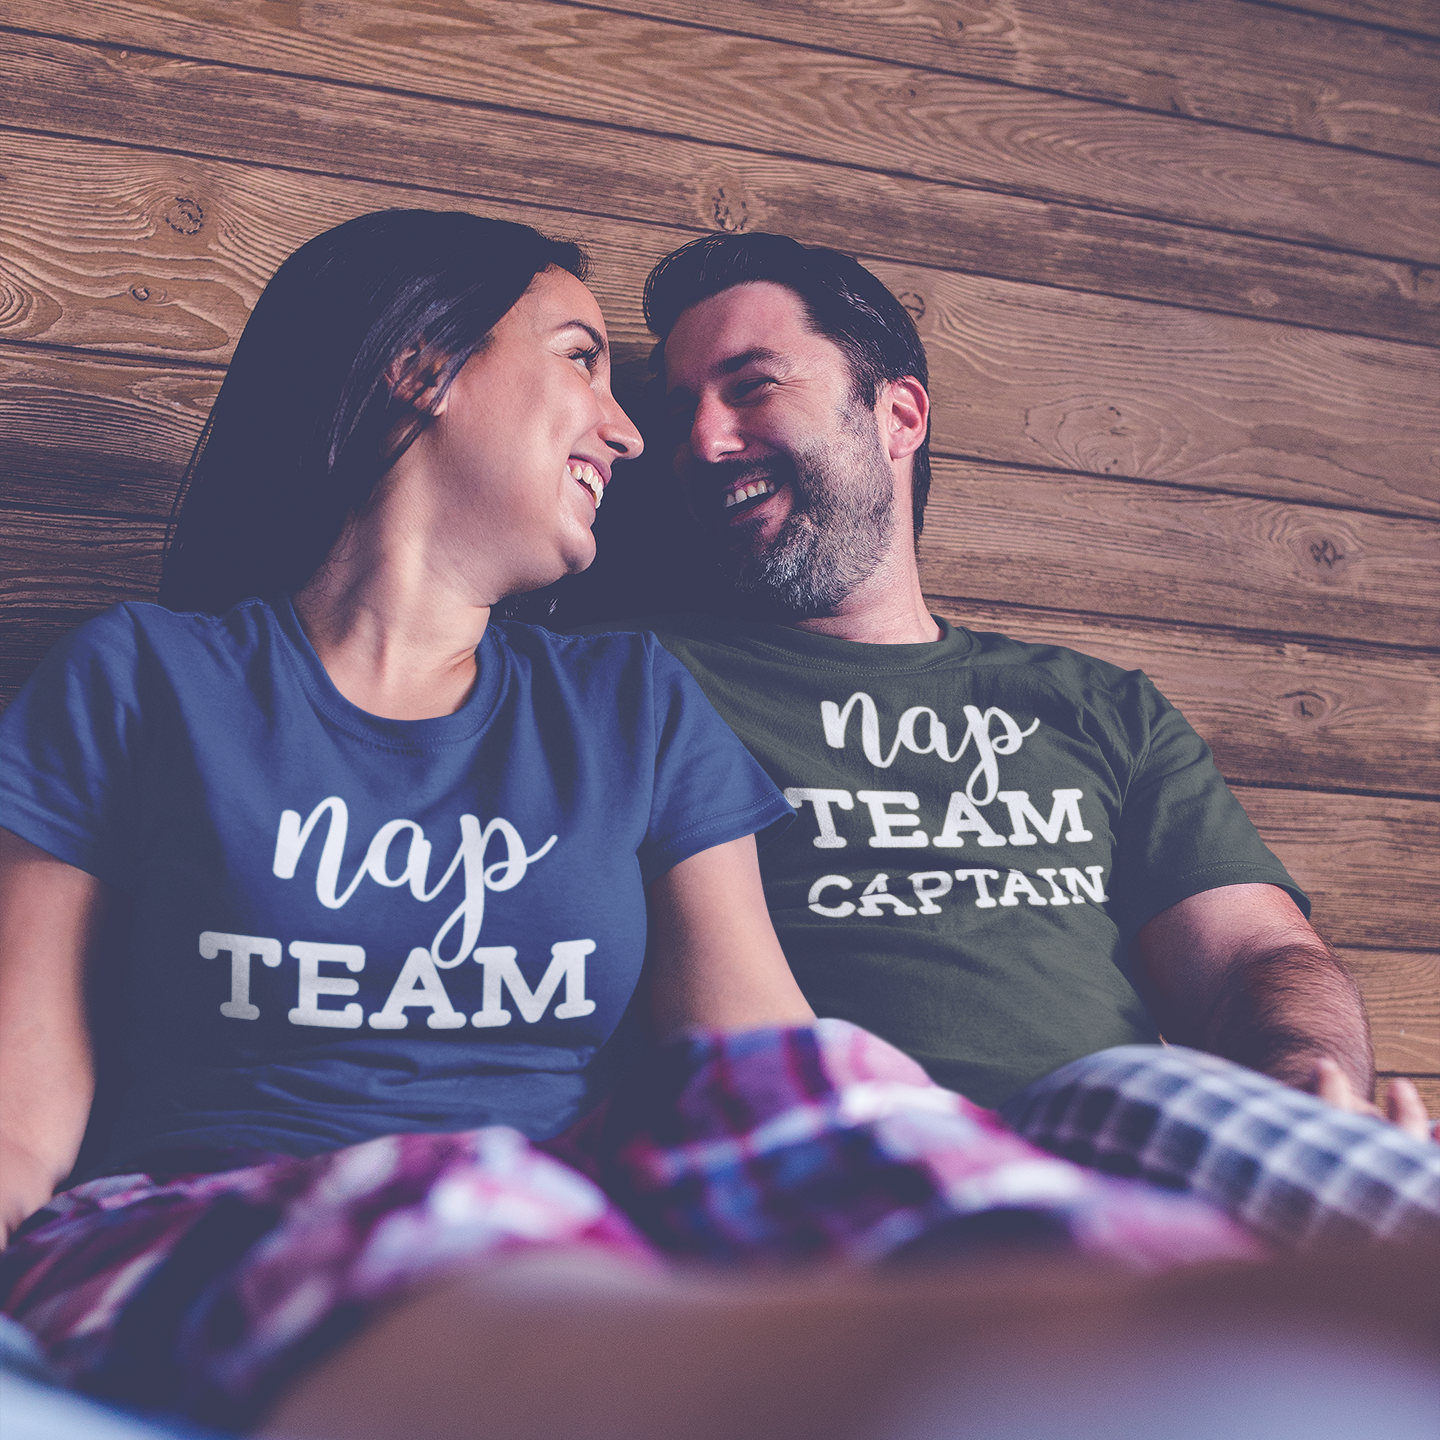 'Nap team captain' adult shirt